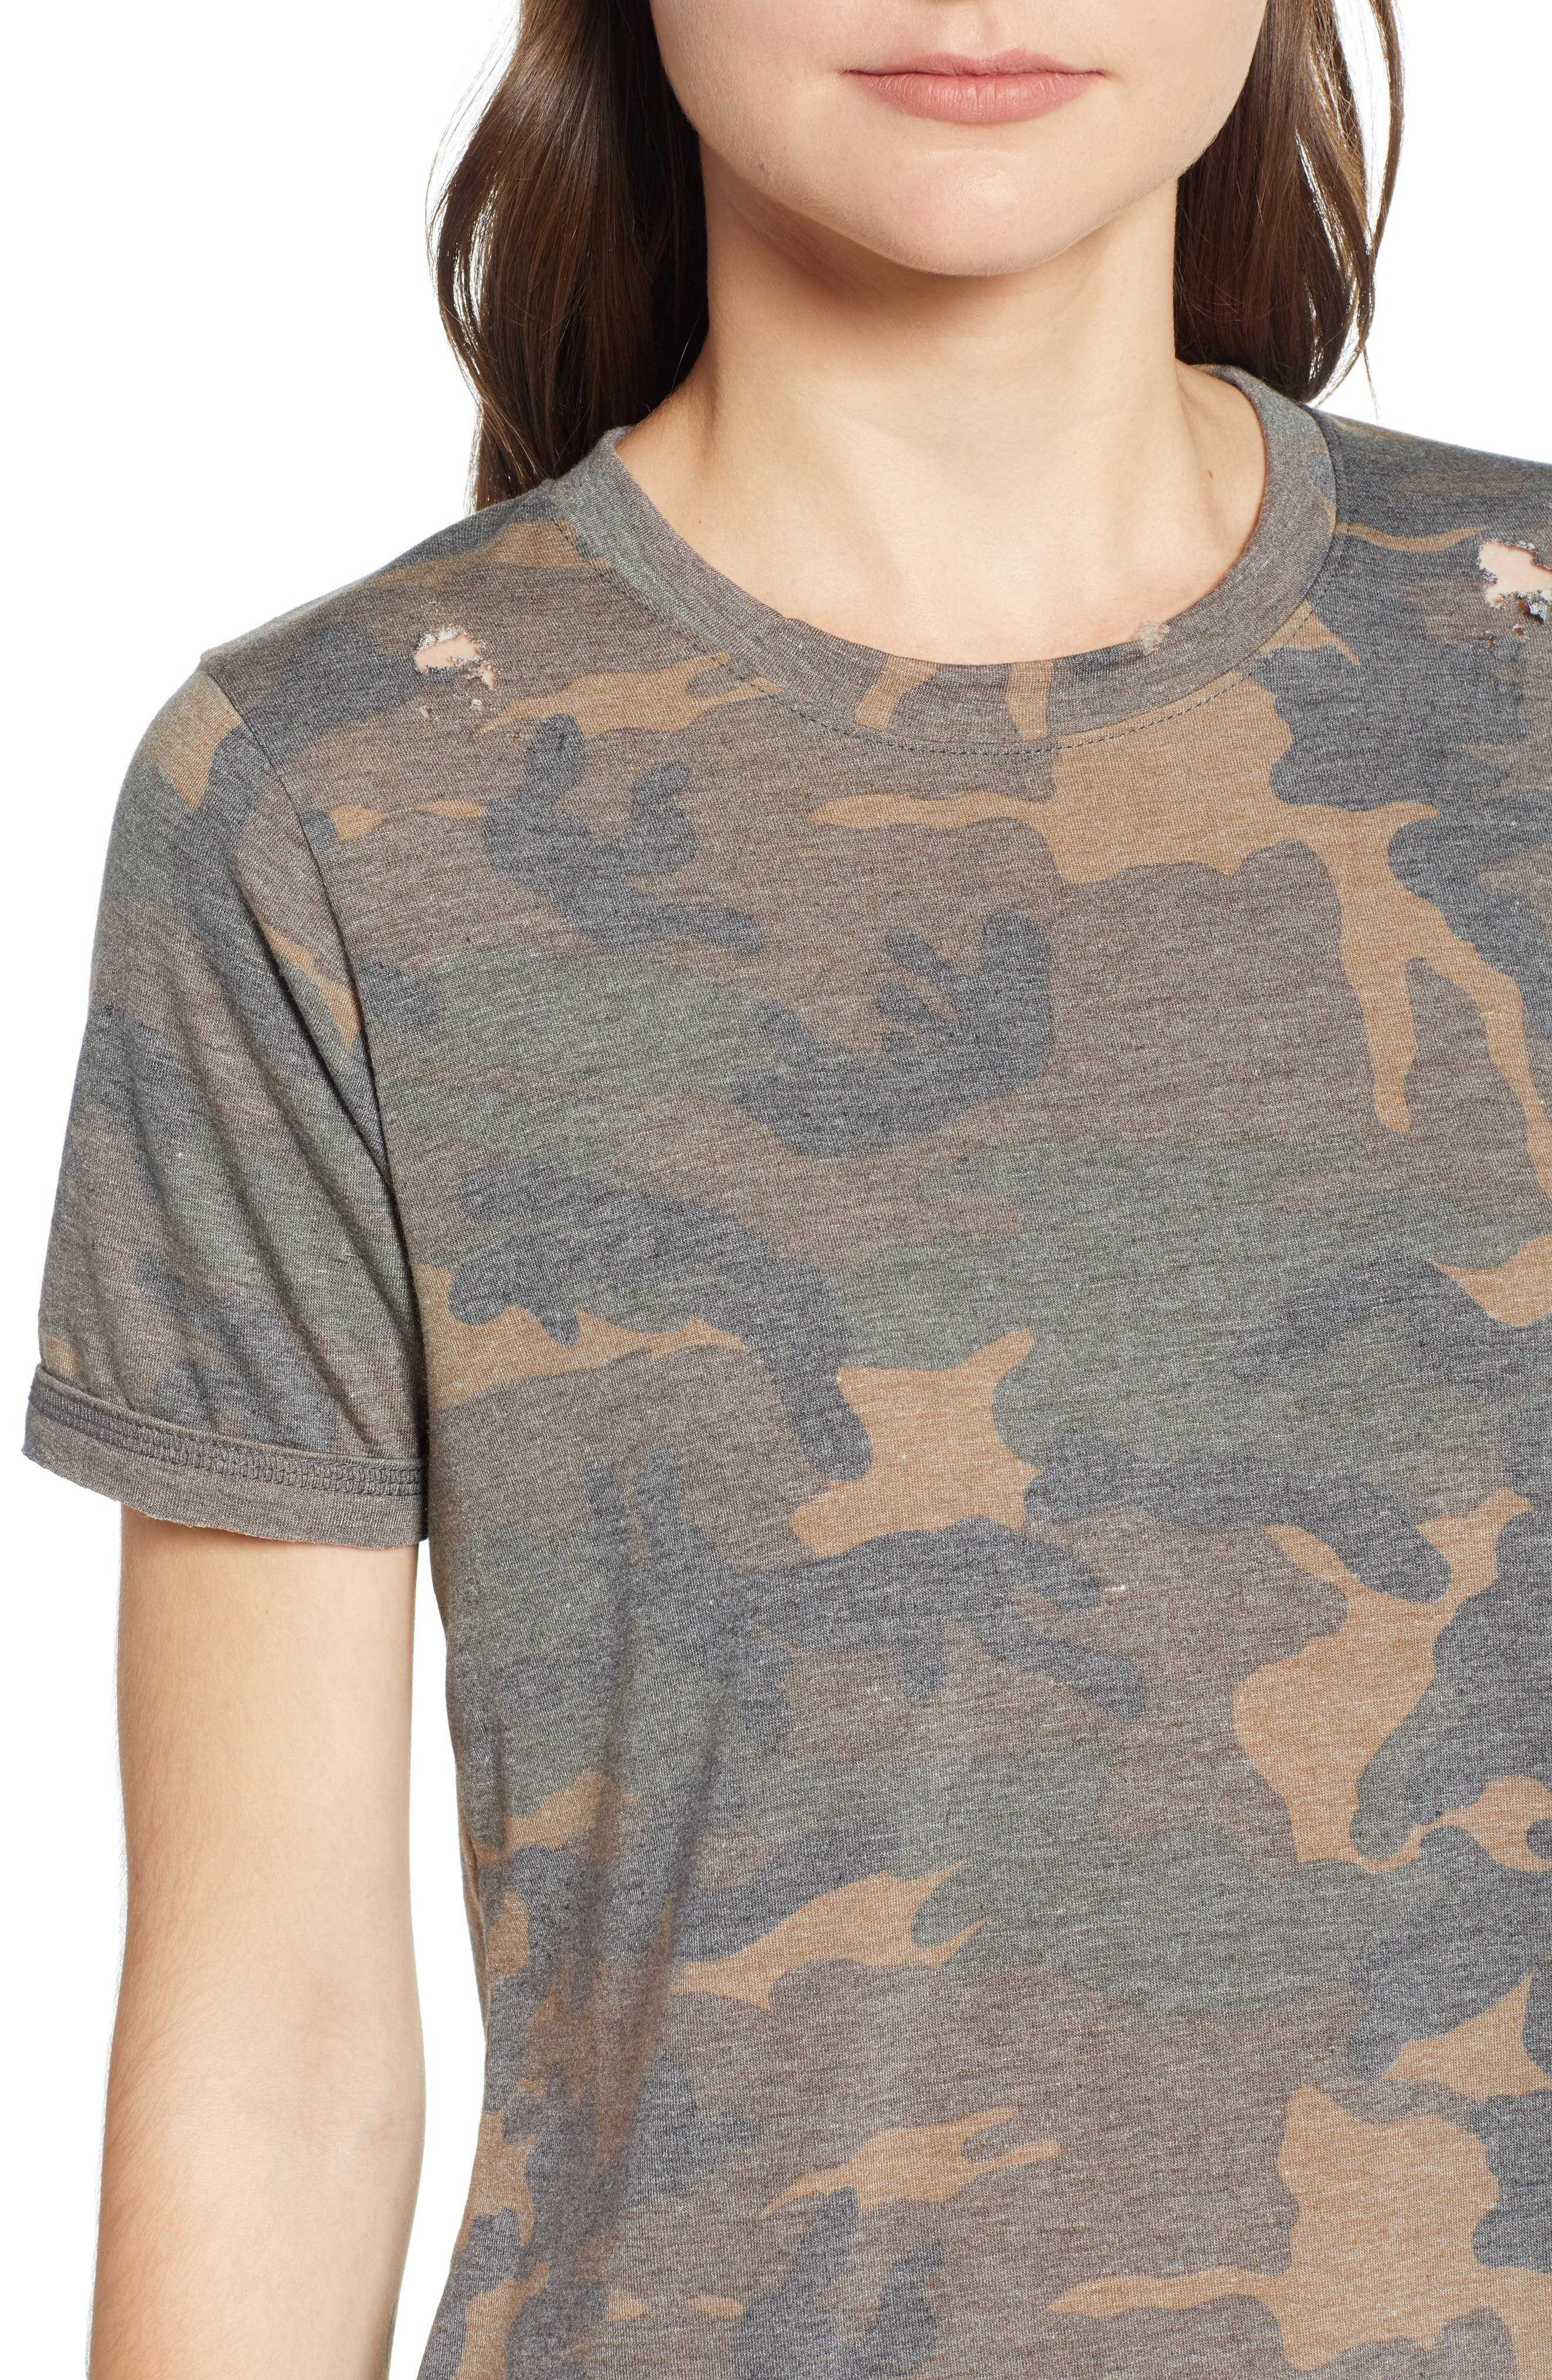 Distressed Camo Tee,                             Alternate thumbnail 4, color,                             304